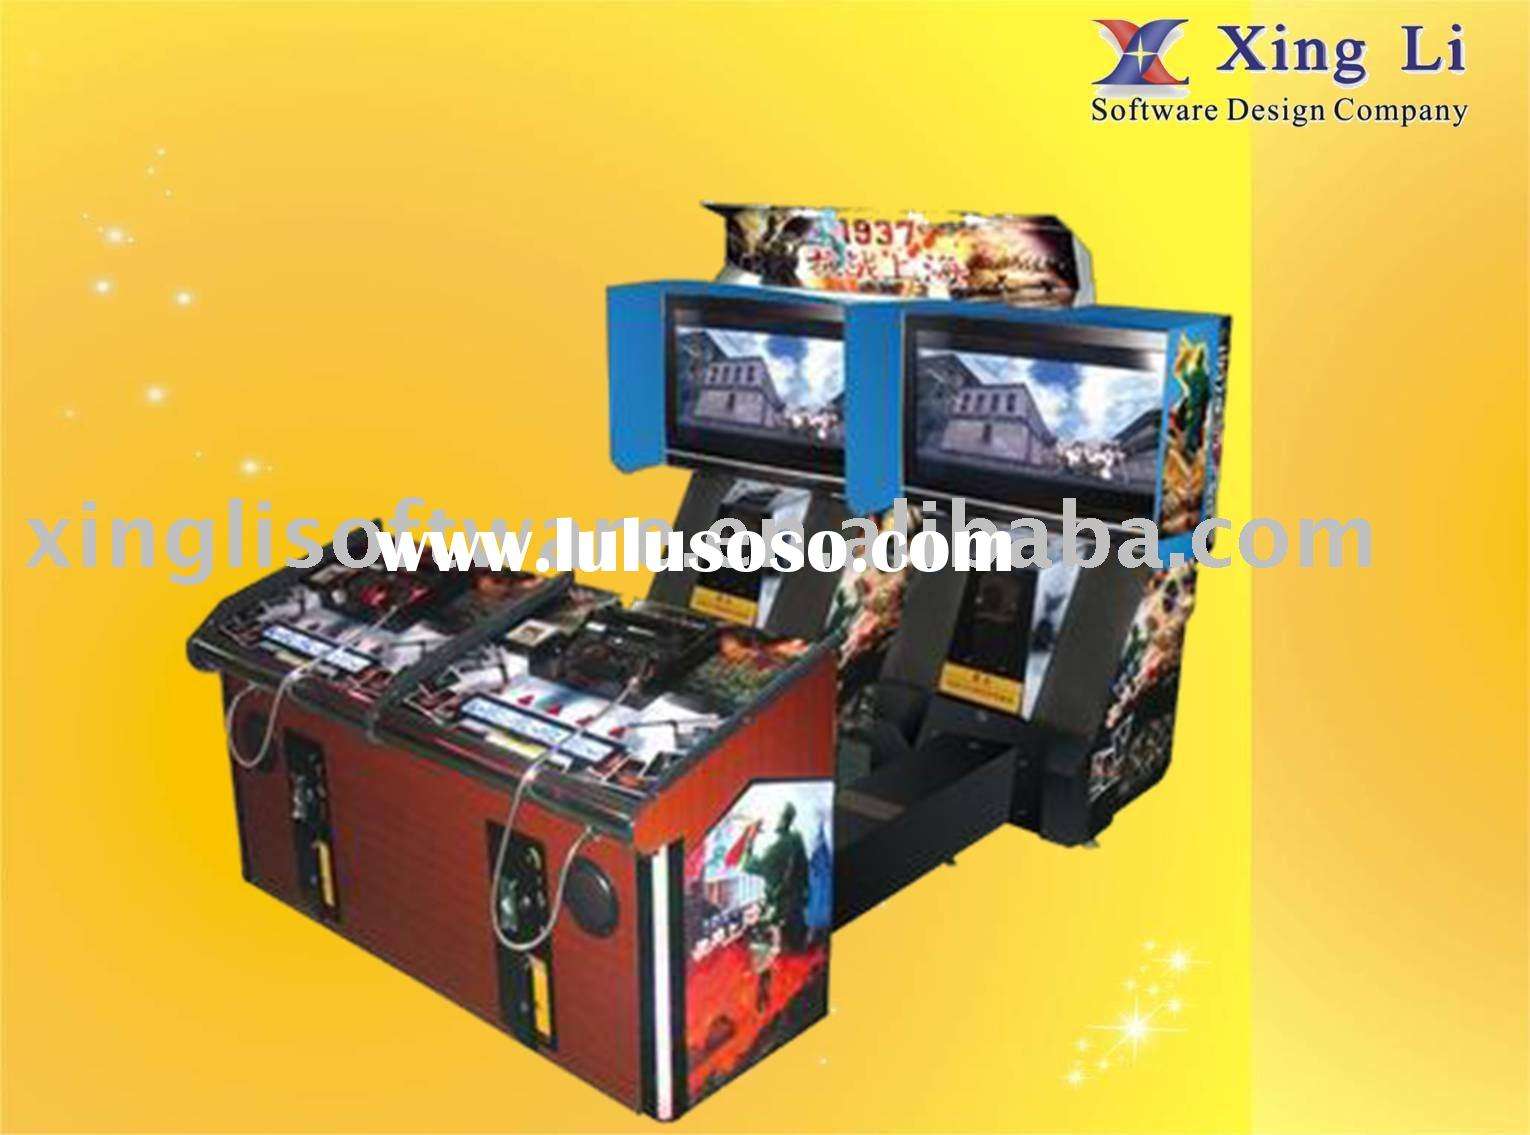 1937 Shanghai War Shooting machine, double arcade machine, video game machine